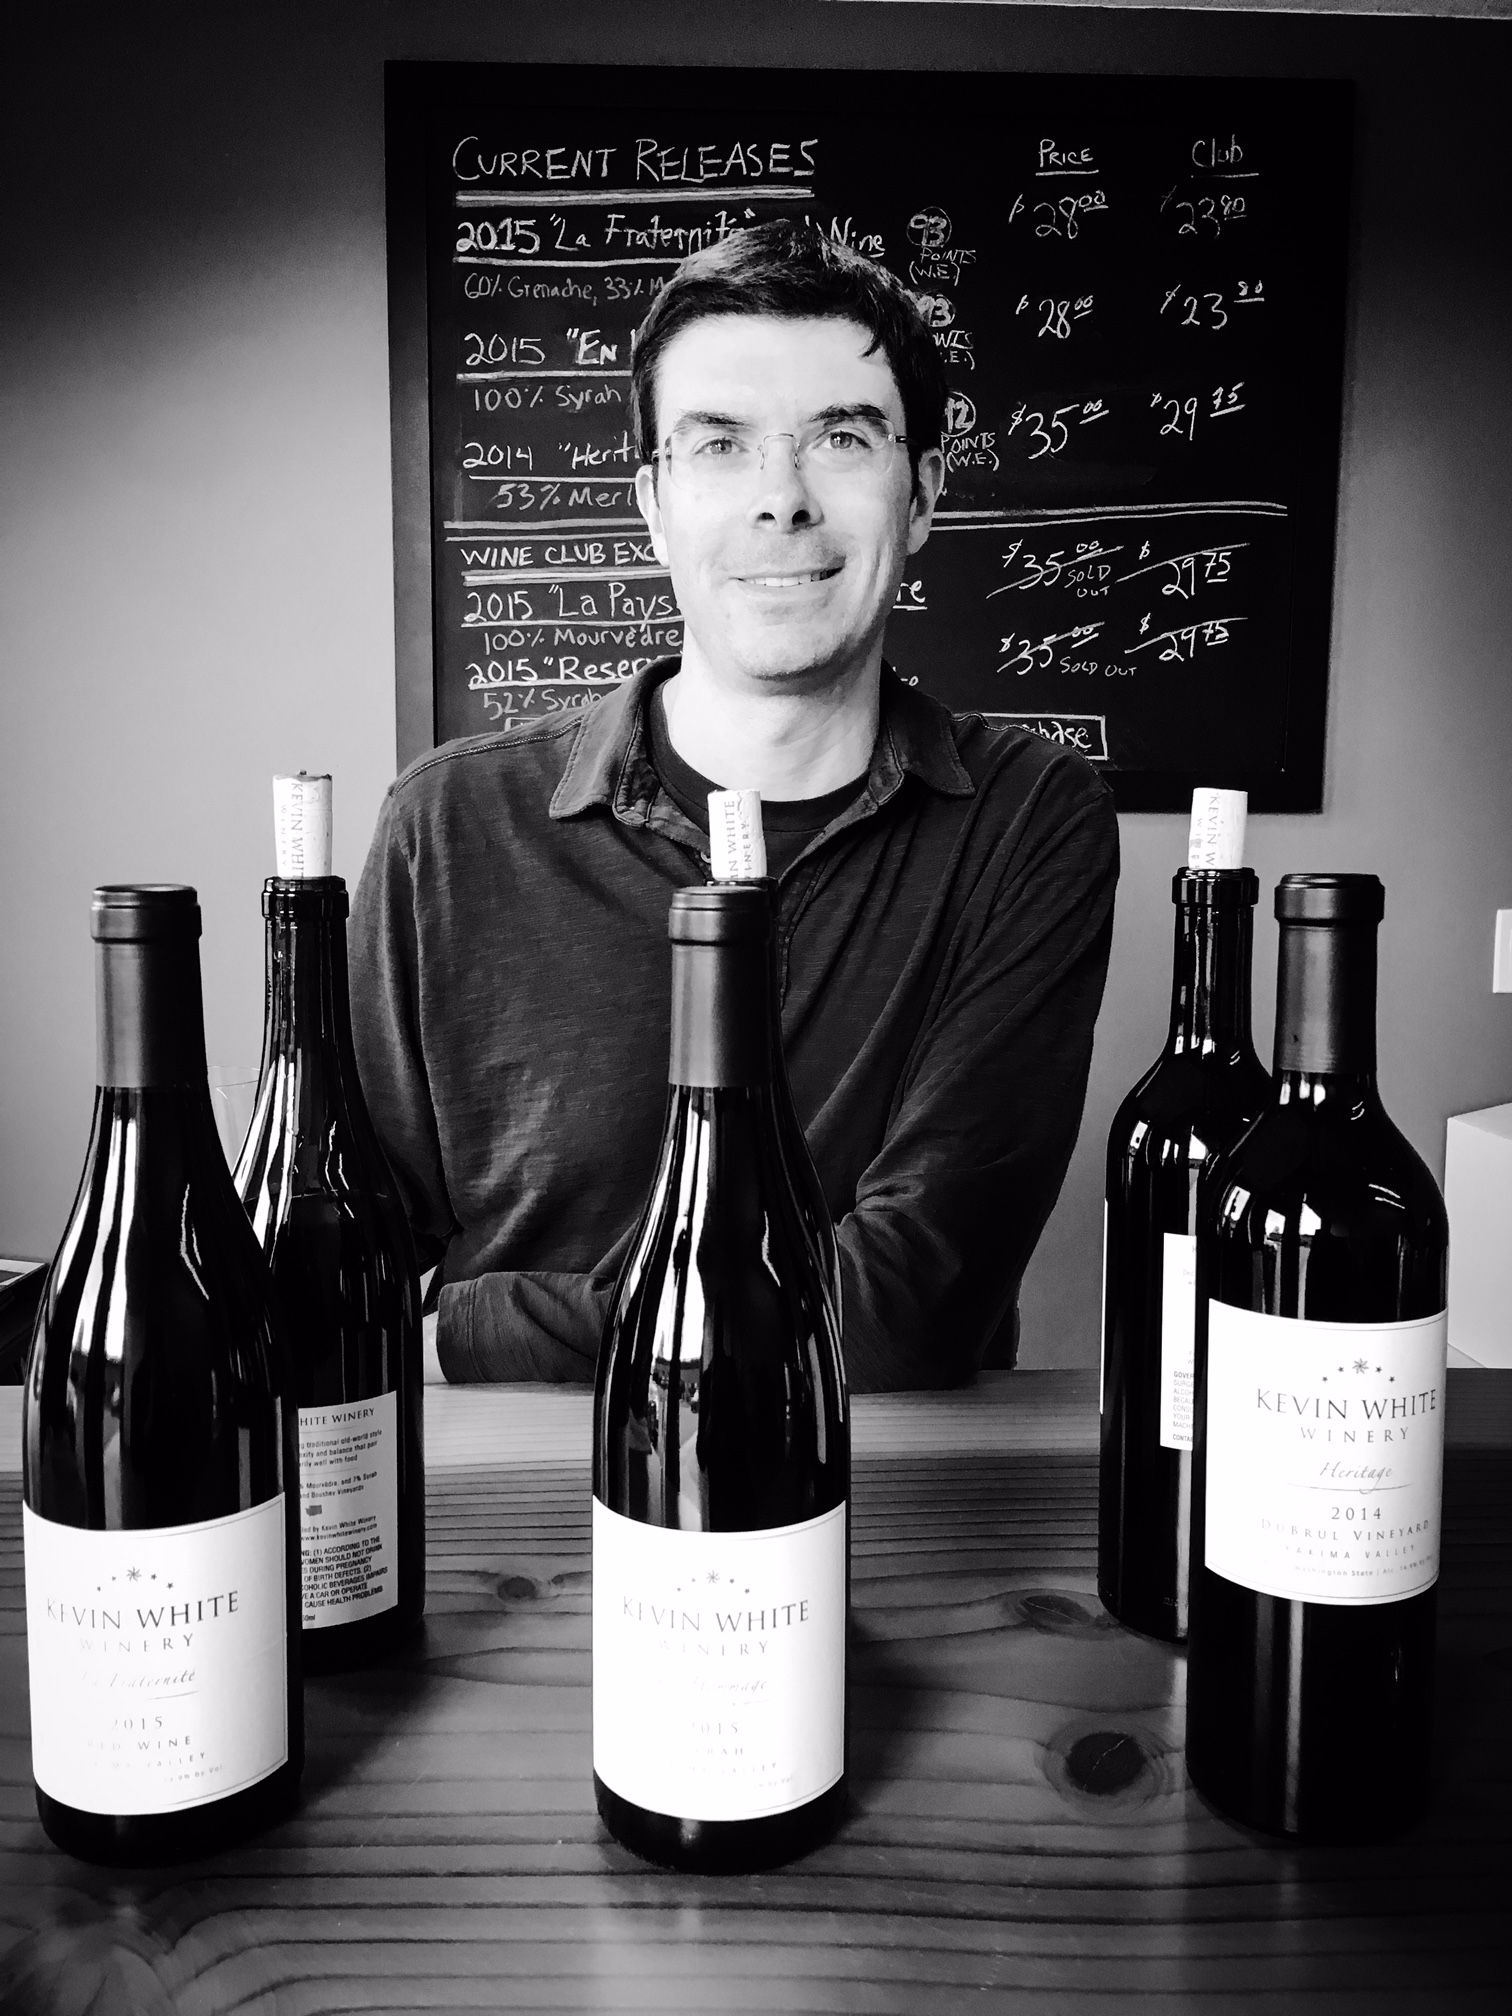 Great photo here of Kevin White and his fantastic new release wines in his tasting room.